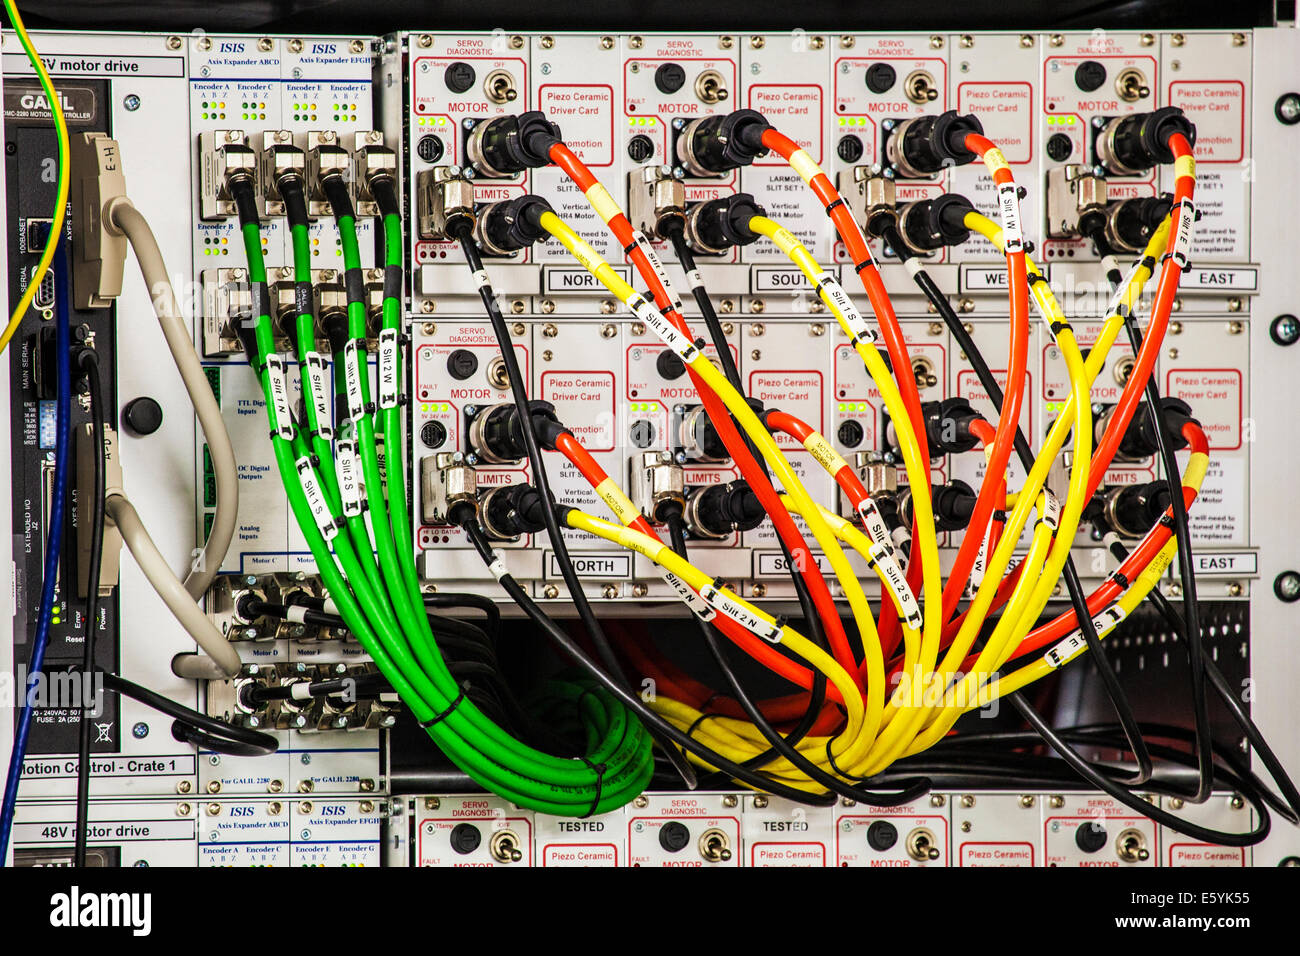 A maze of colour coded electric cables powering scientific equipment in a research laboratory. - Stock Image